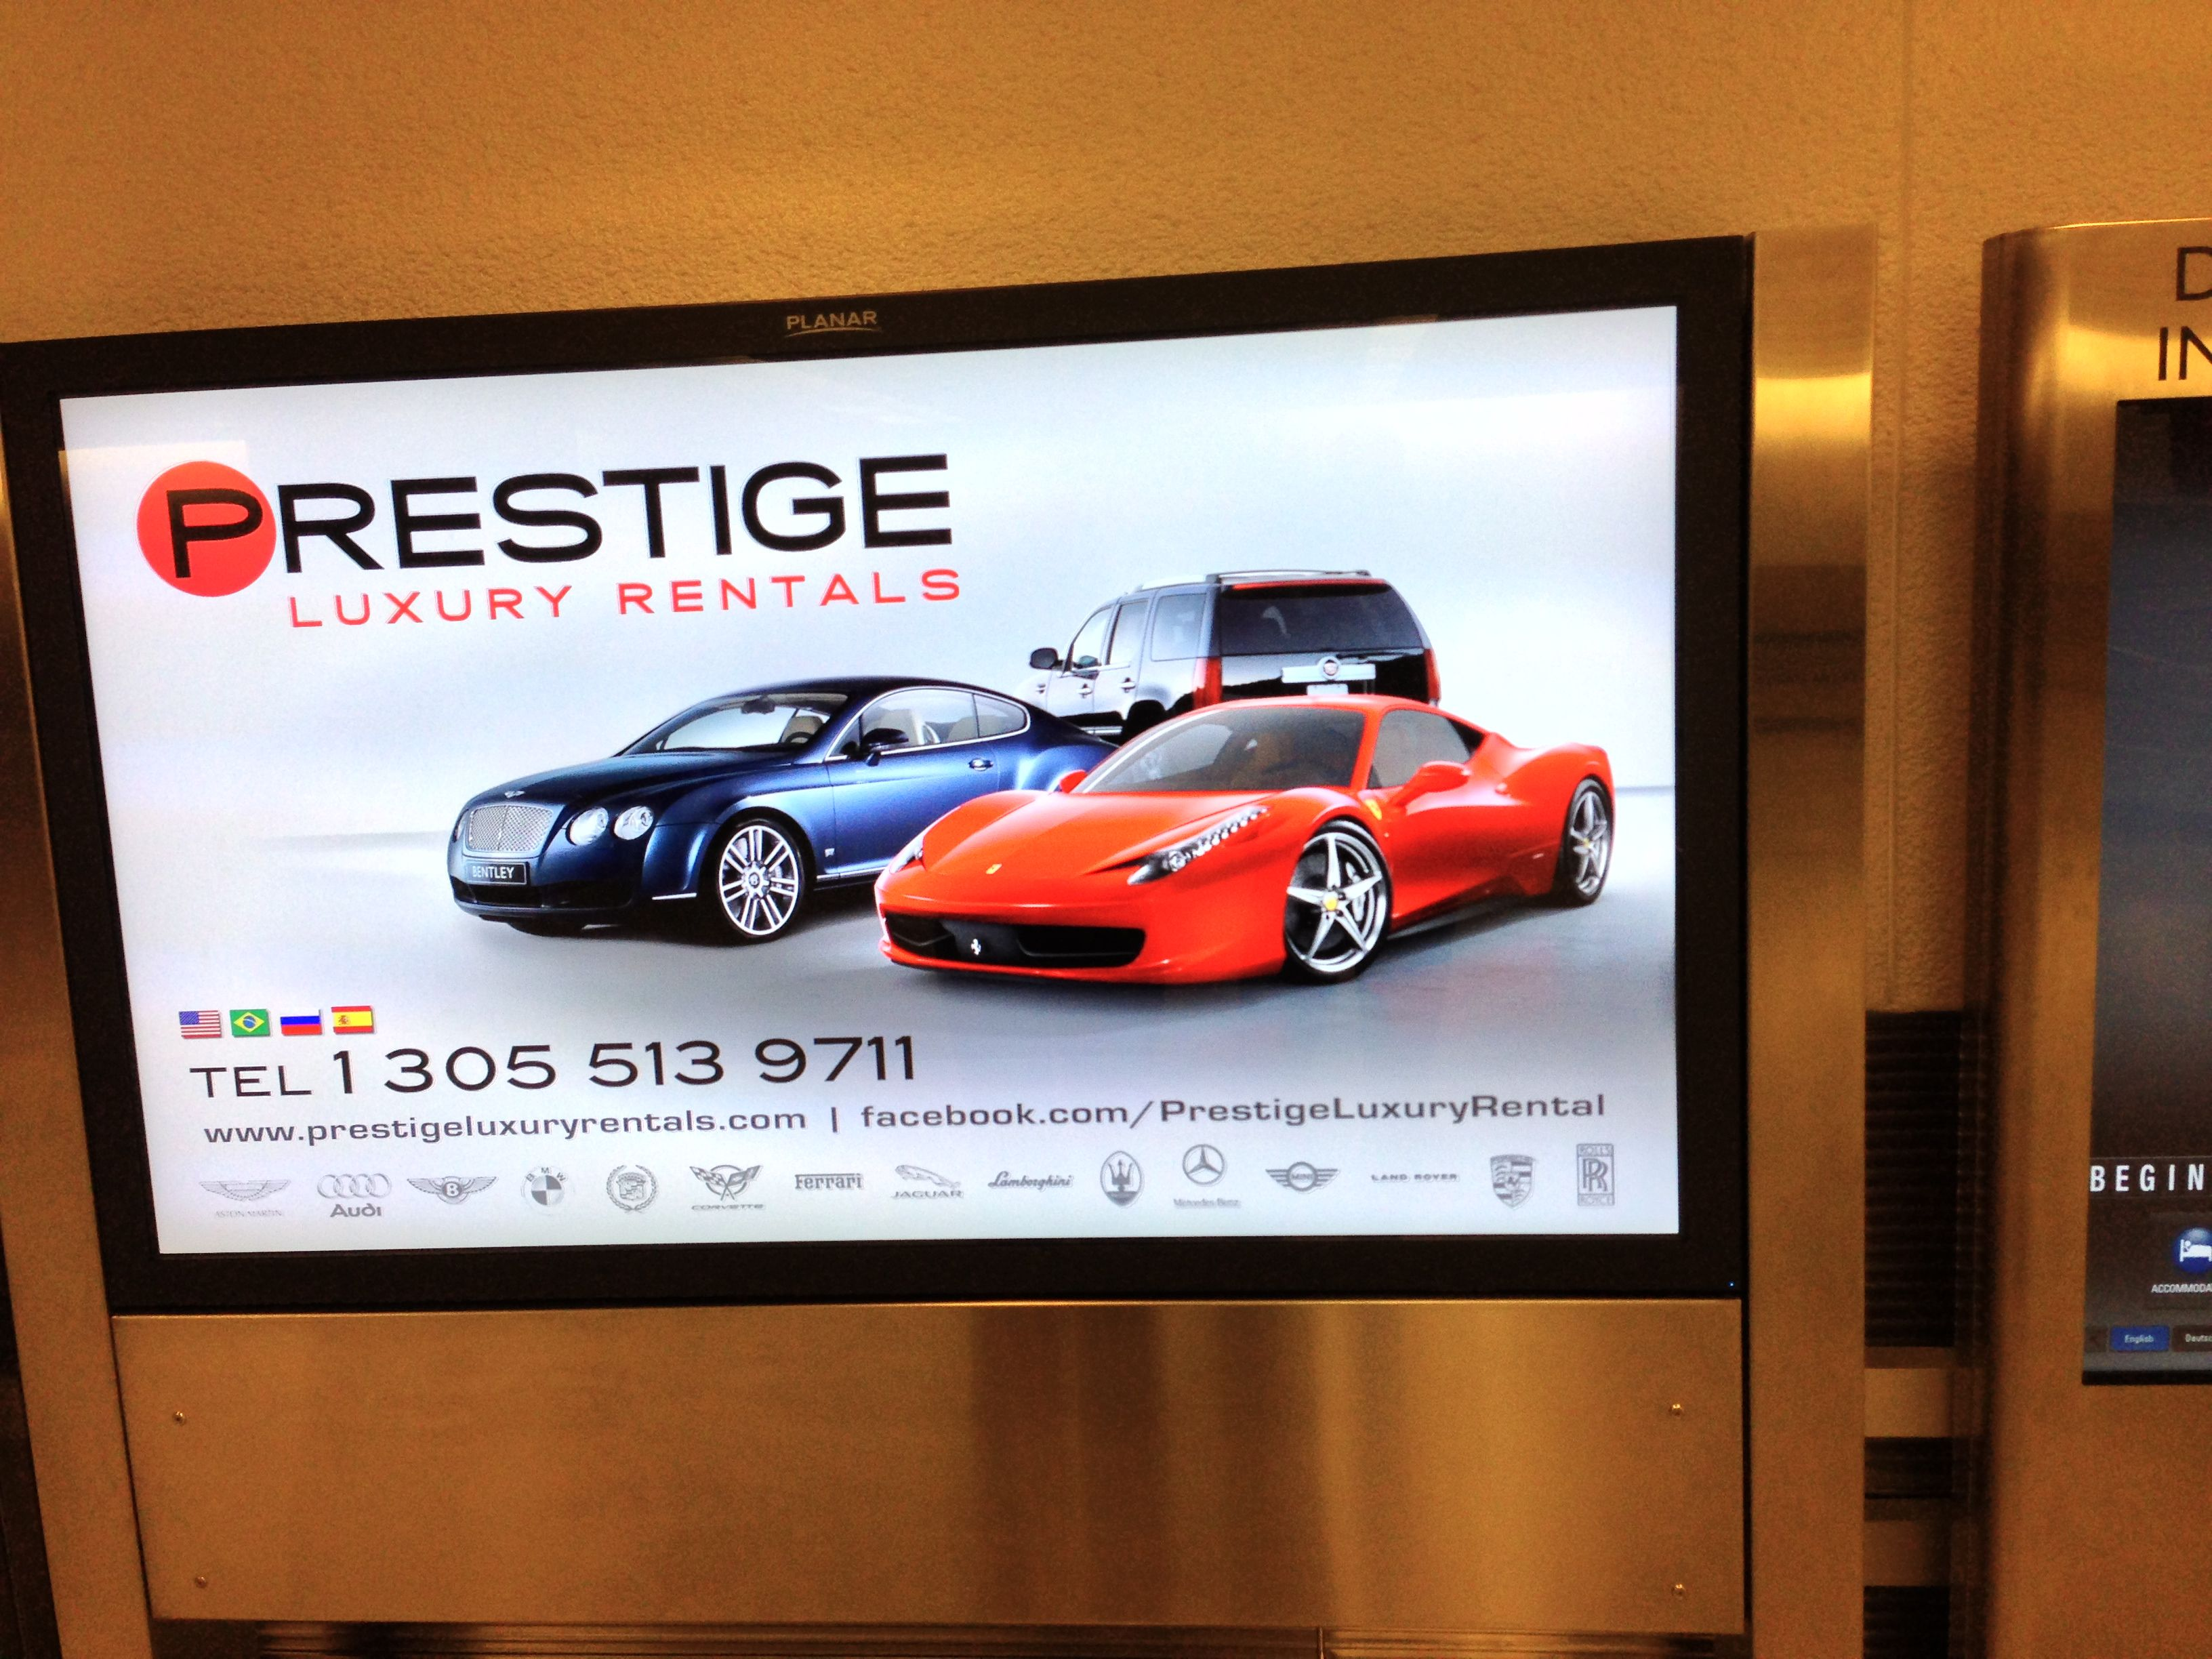 Prestige luxury auto rentals now available at the Miami